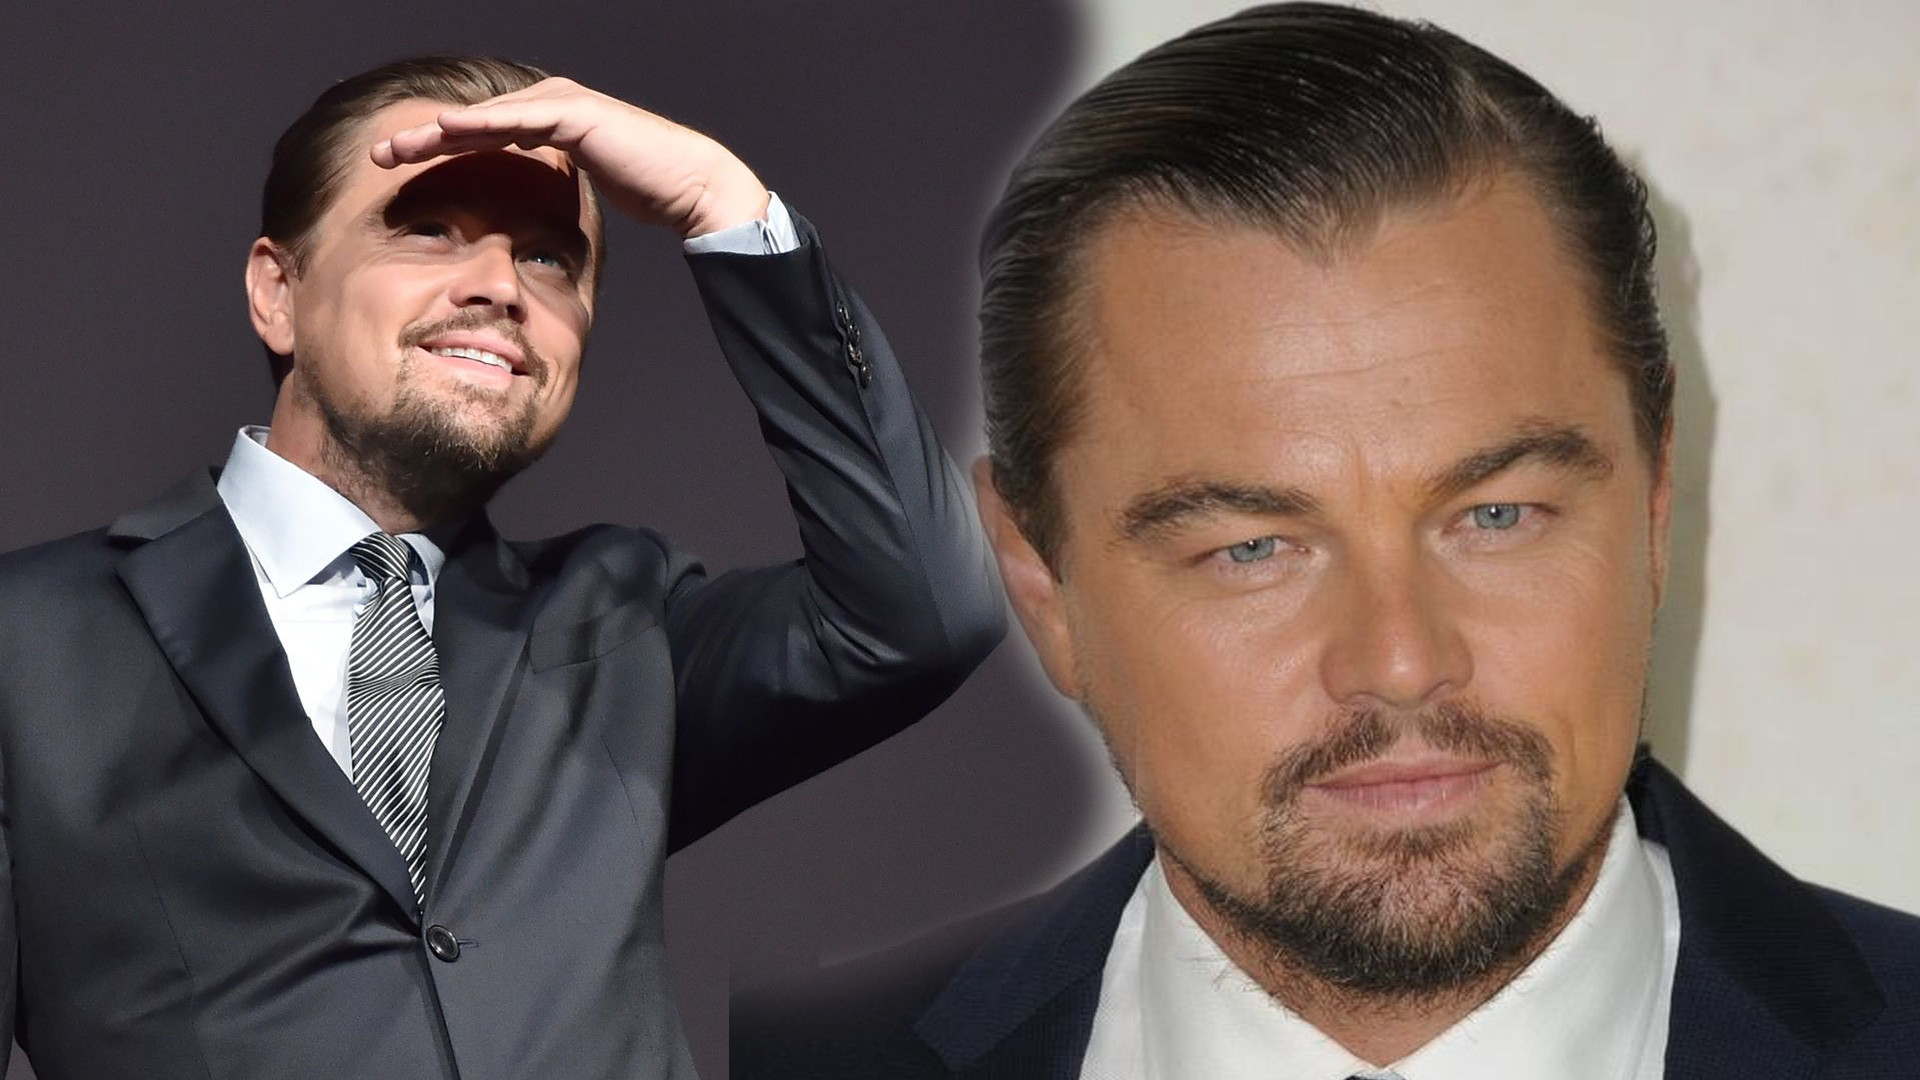 Leonardo DiCaprio to prawdziwy bohater! Uratował życie tonącemu człowiekowi